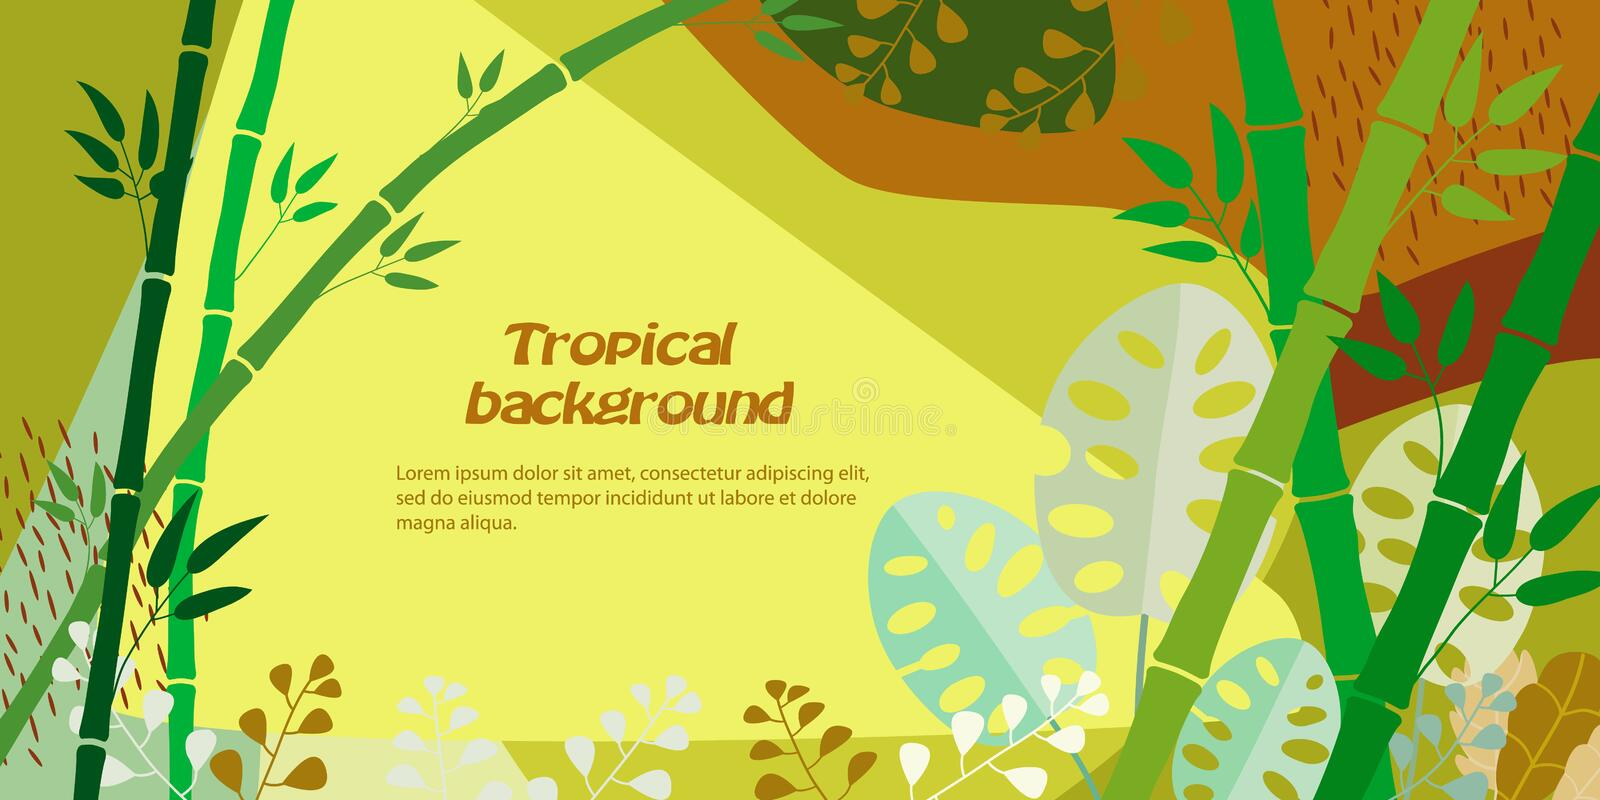 Tropical background with stalks of bamboo, monstera, jungle foliage. Vector illustration. Template for cover, advertising, web royalty free illustration